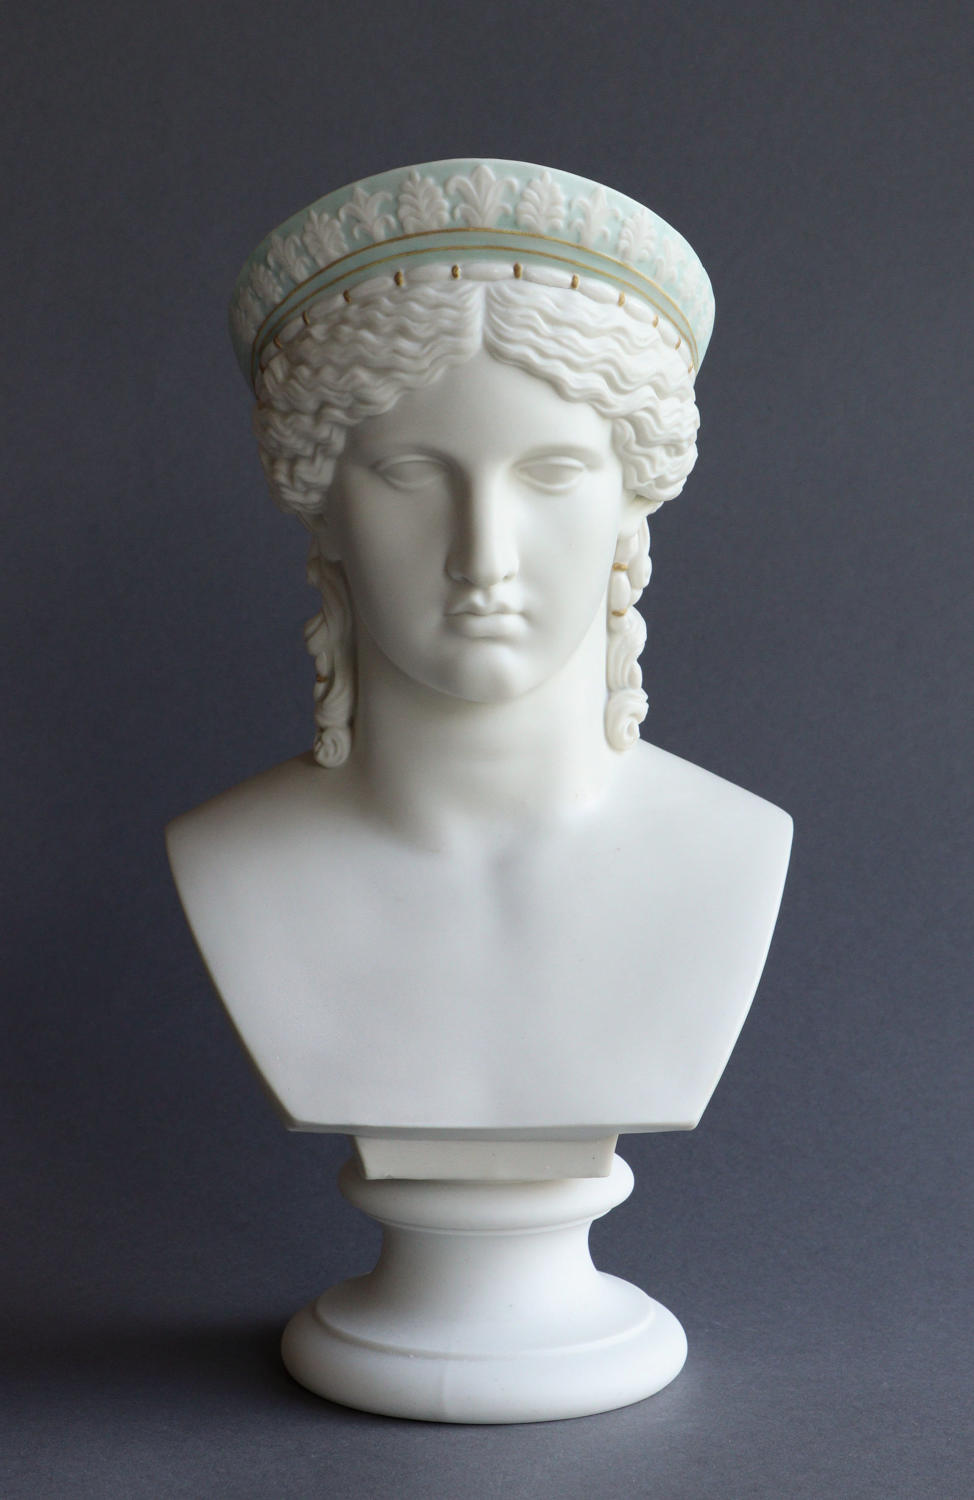 A rare tinted Parian bust of Juno by Copeland